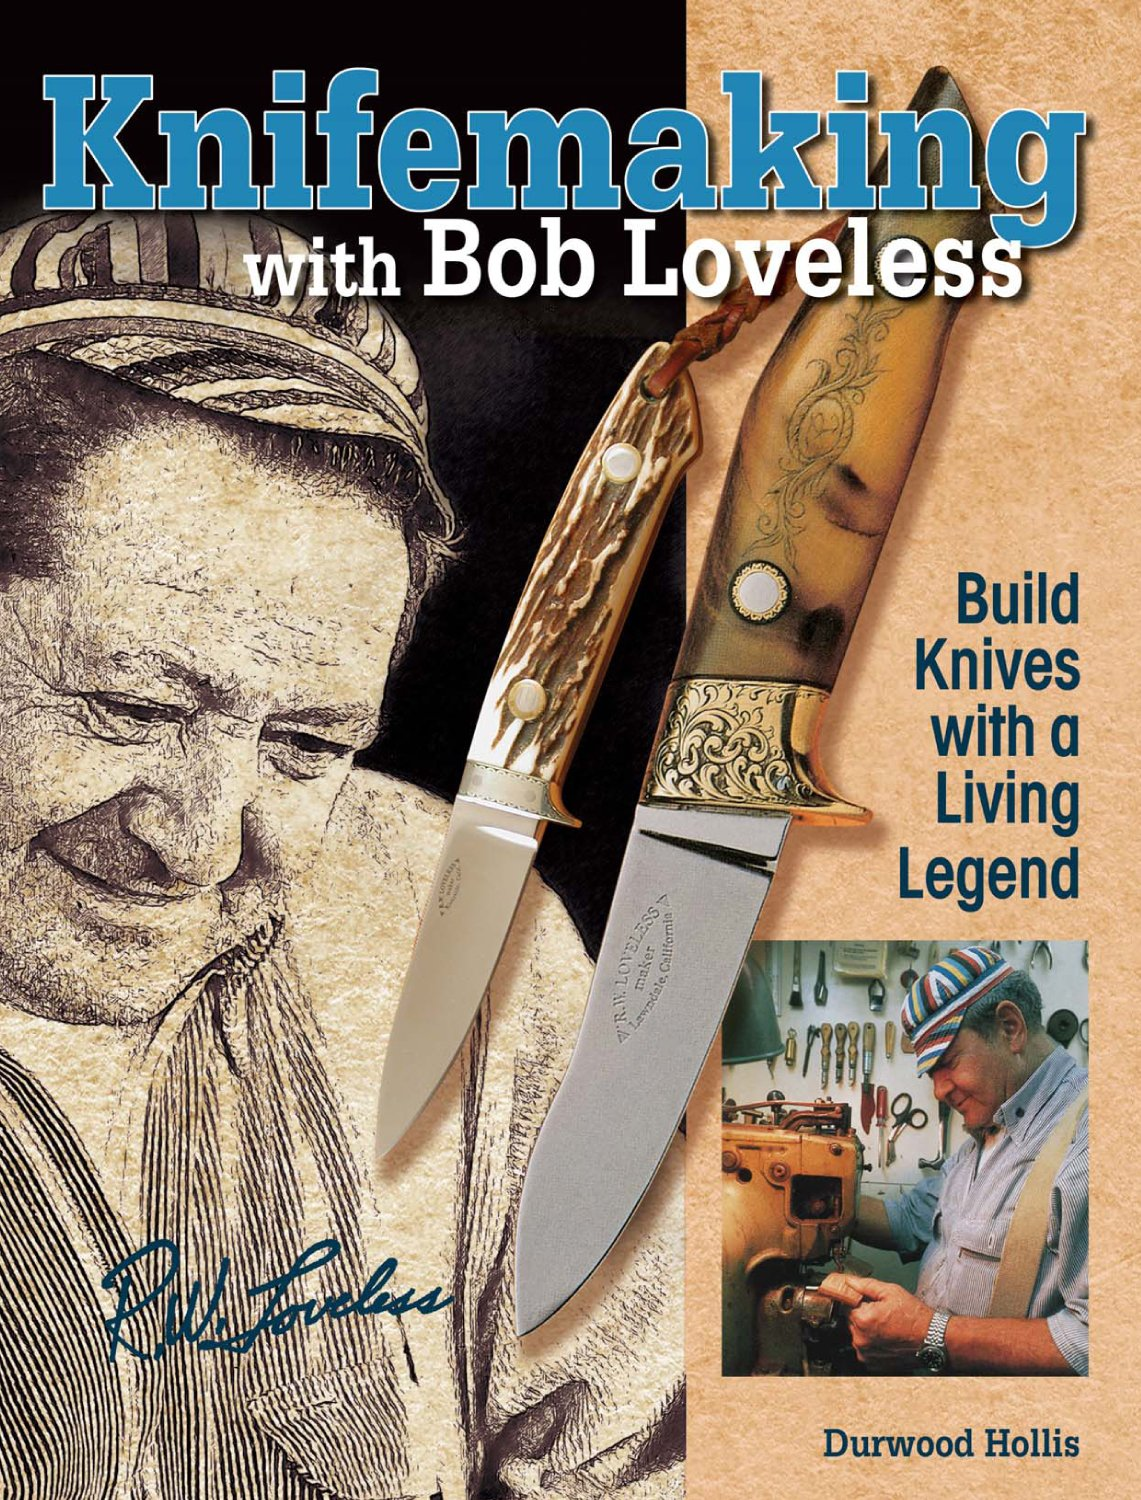 Amazon.com: Knifemaking with Bob Loveless: Build Knives with a Living  Legend (0074962011633): Durwood Hollis: Books